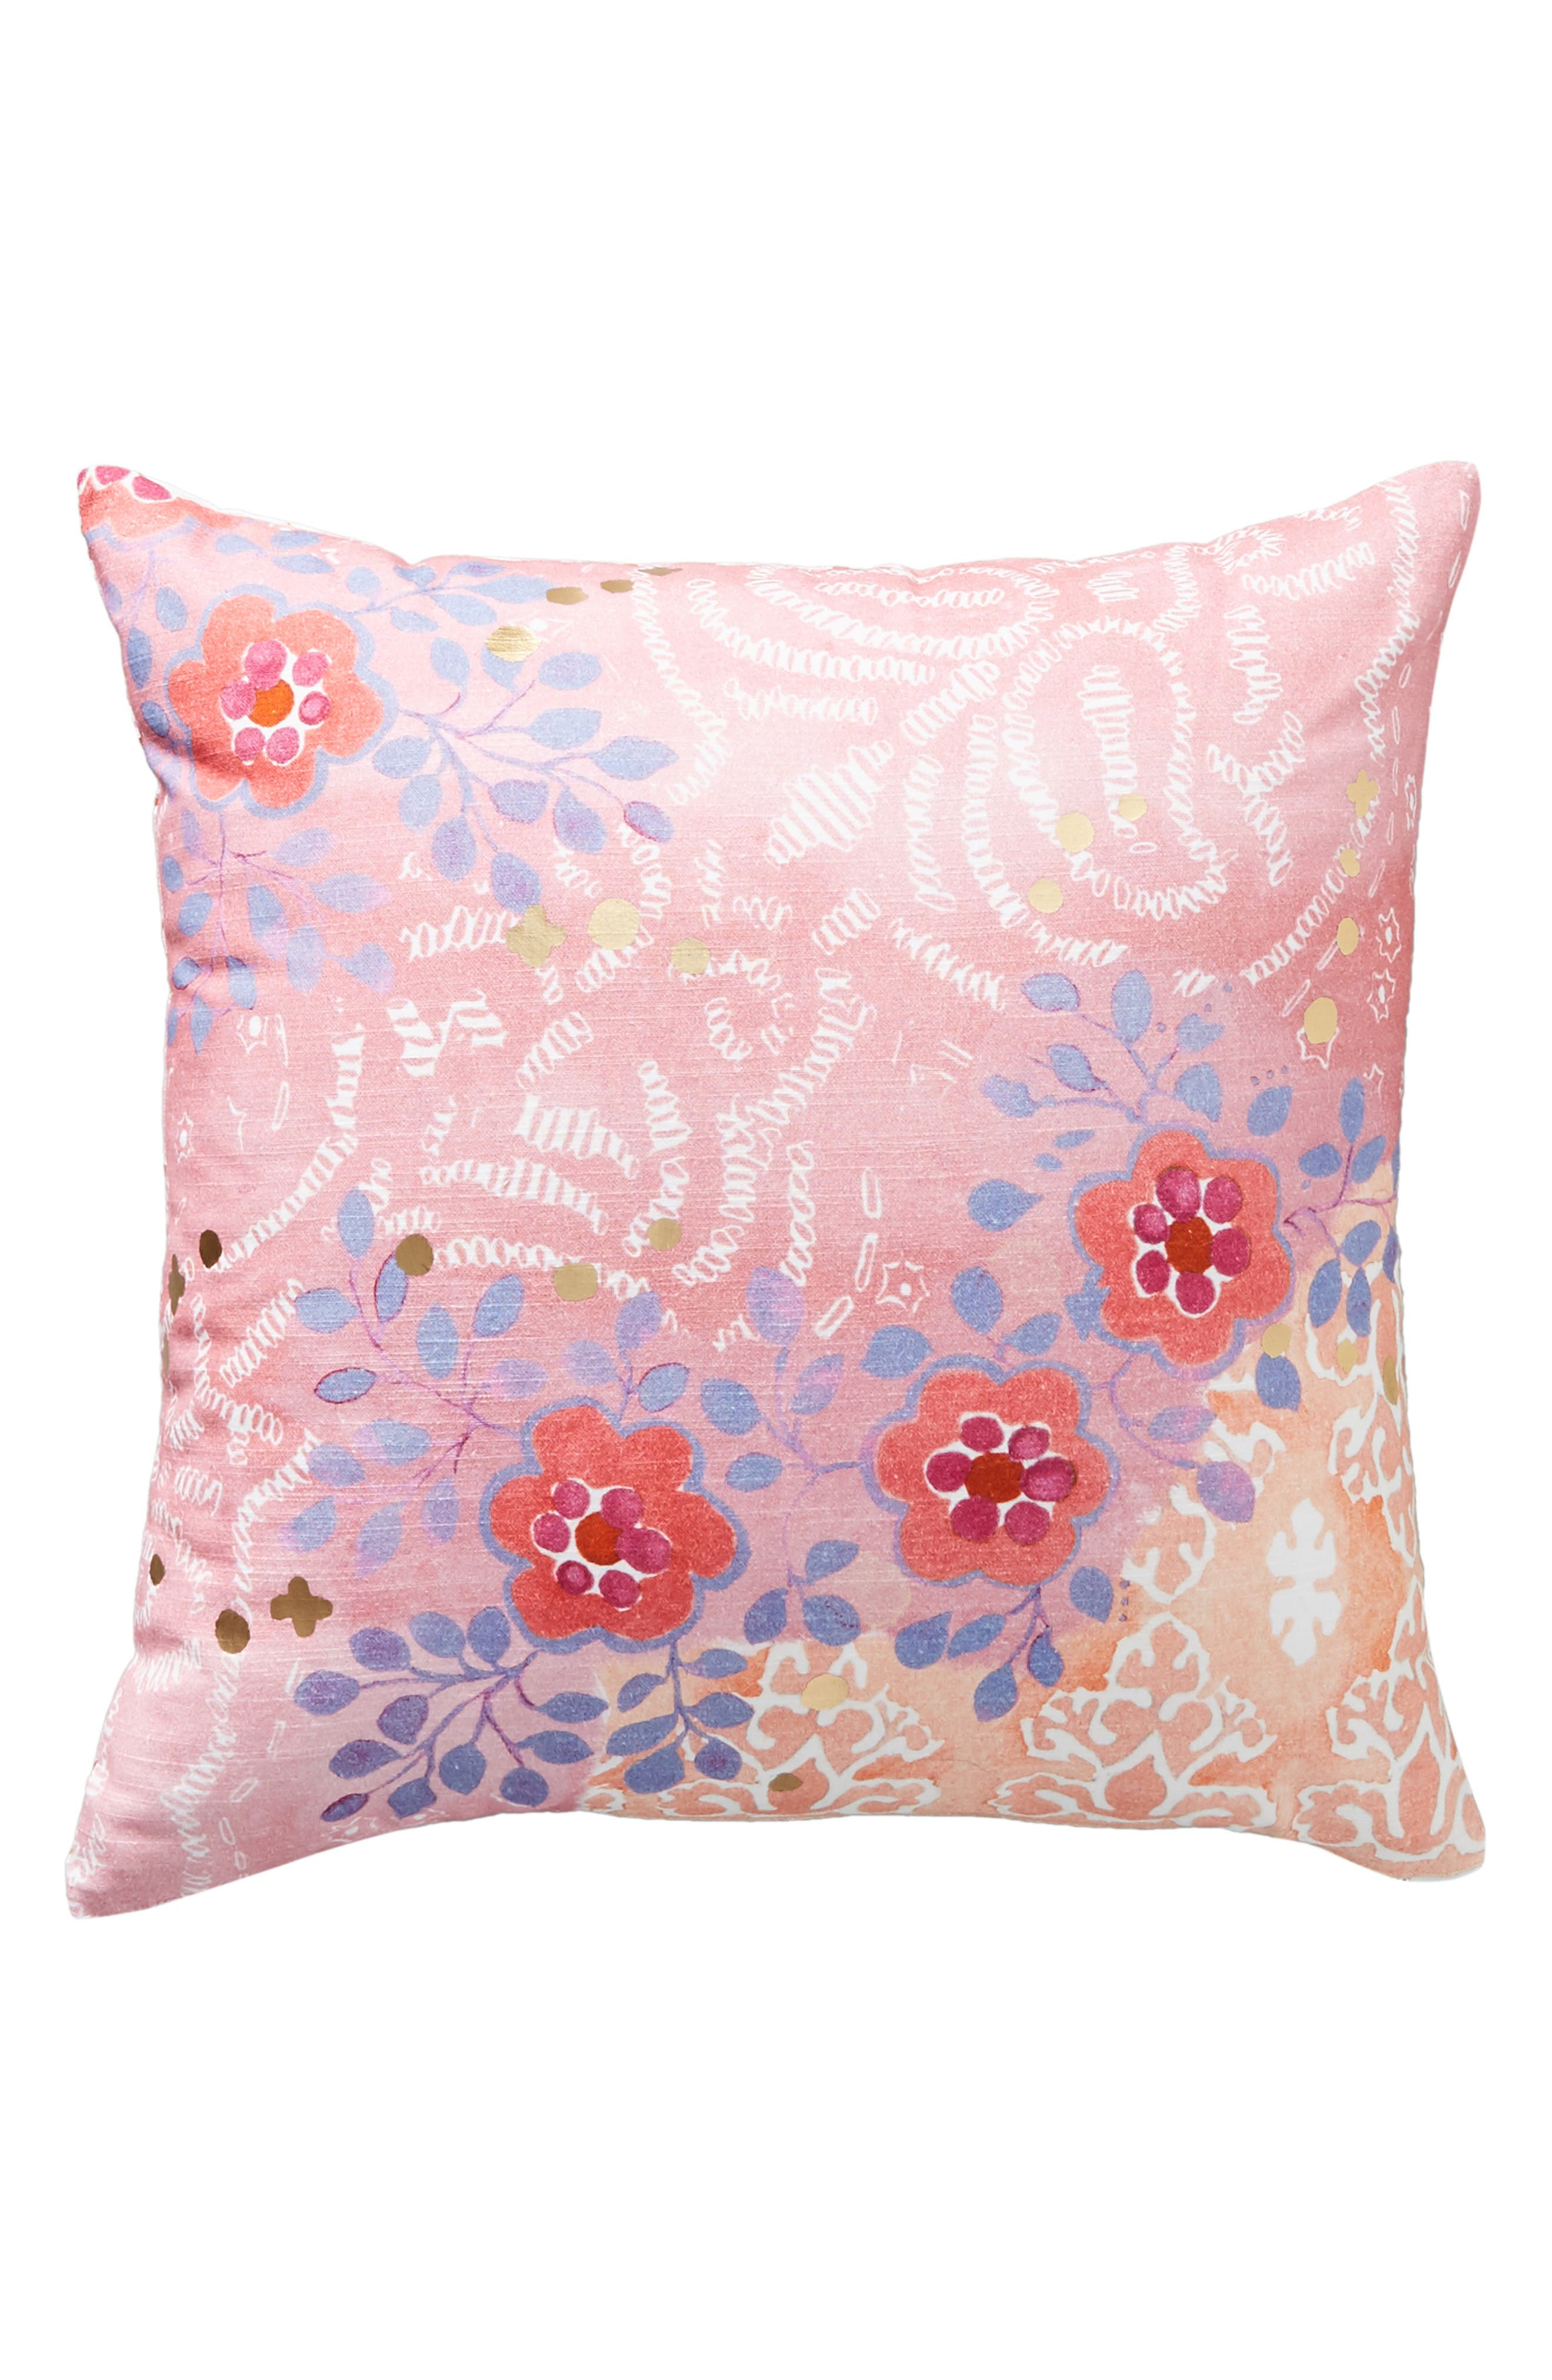 Piper Accent Pillow,                             Alternate thumbnail 4, color,                             650